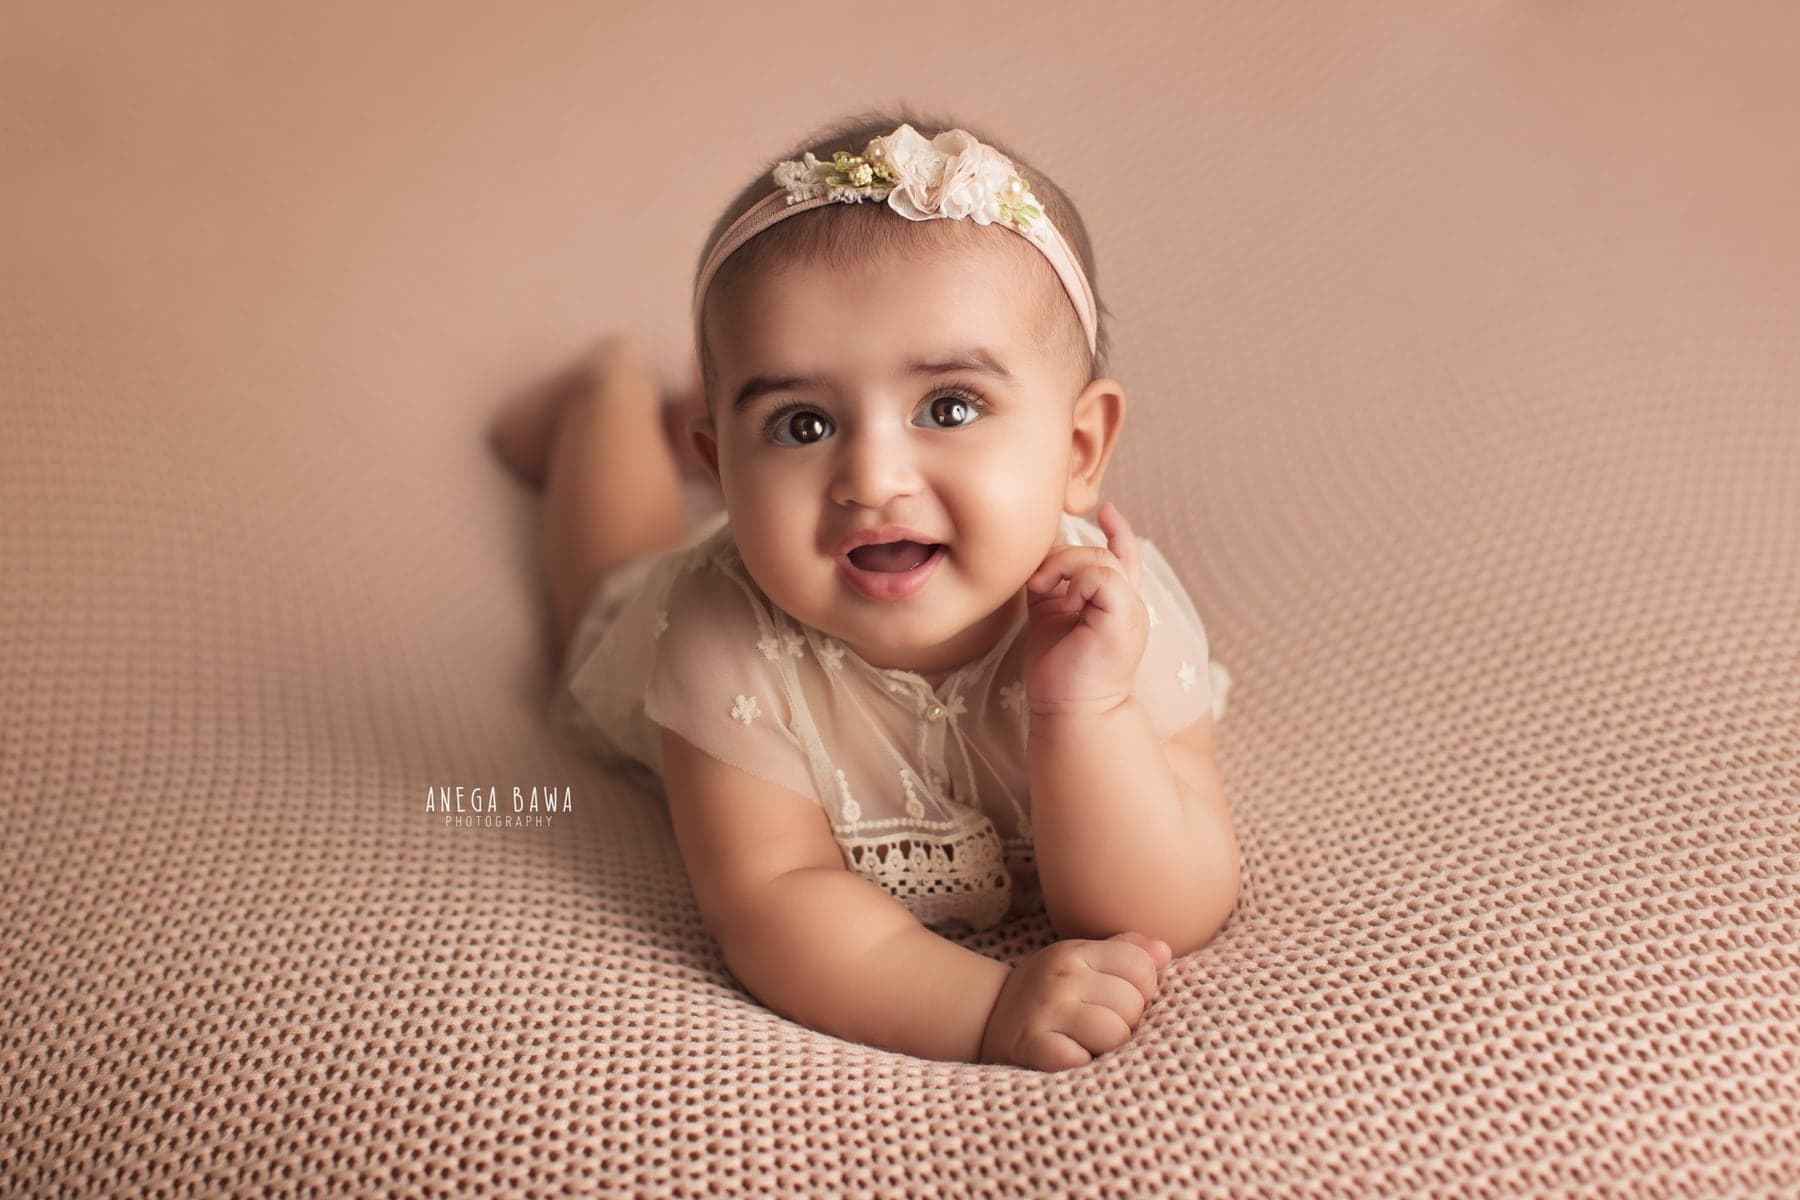 242105-beige-background-baby-photography-delhi-5-6-7-months-baby-photoshoot-gurgaon-anega-bawa